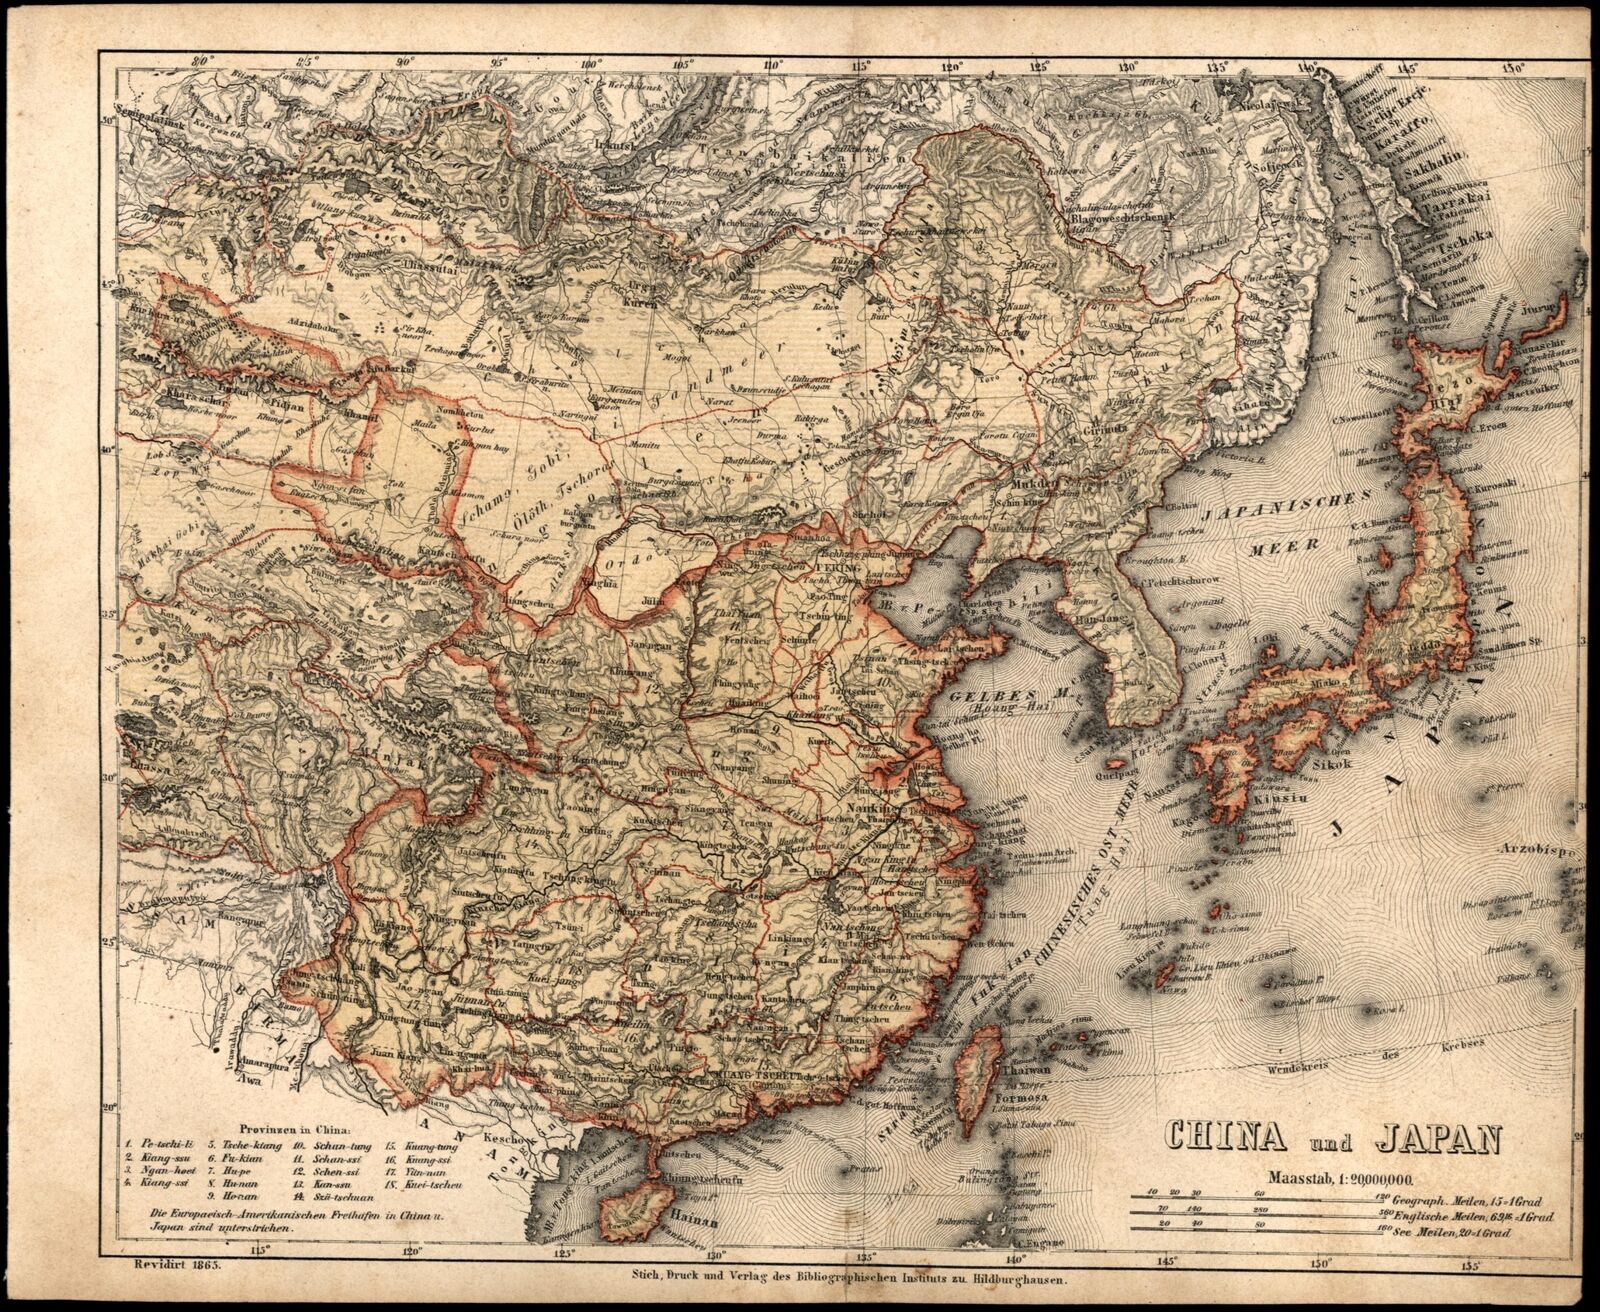 Map Of Asia Japan And China.Asia China Japan Korea C 1867 Detailed German Map Ebay